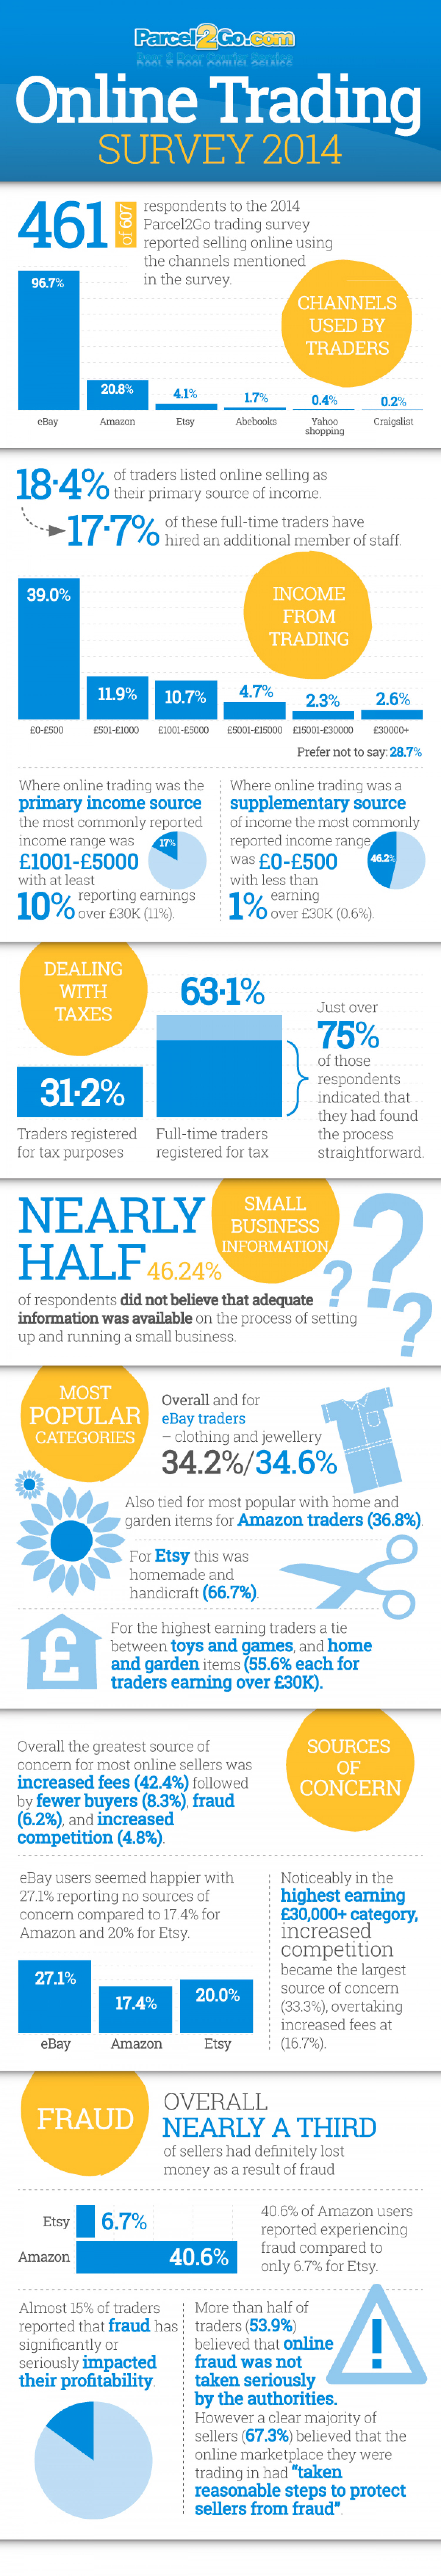 Online Trading Survey 2014 Infographic